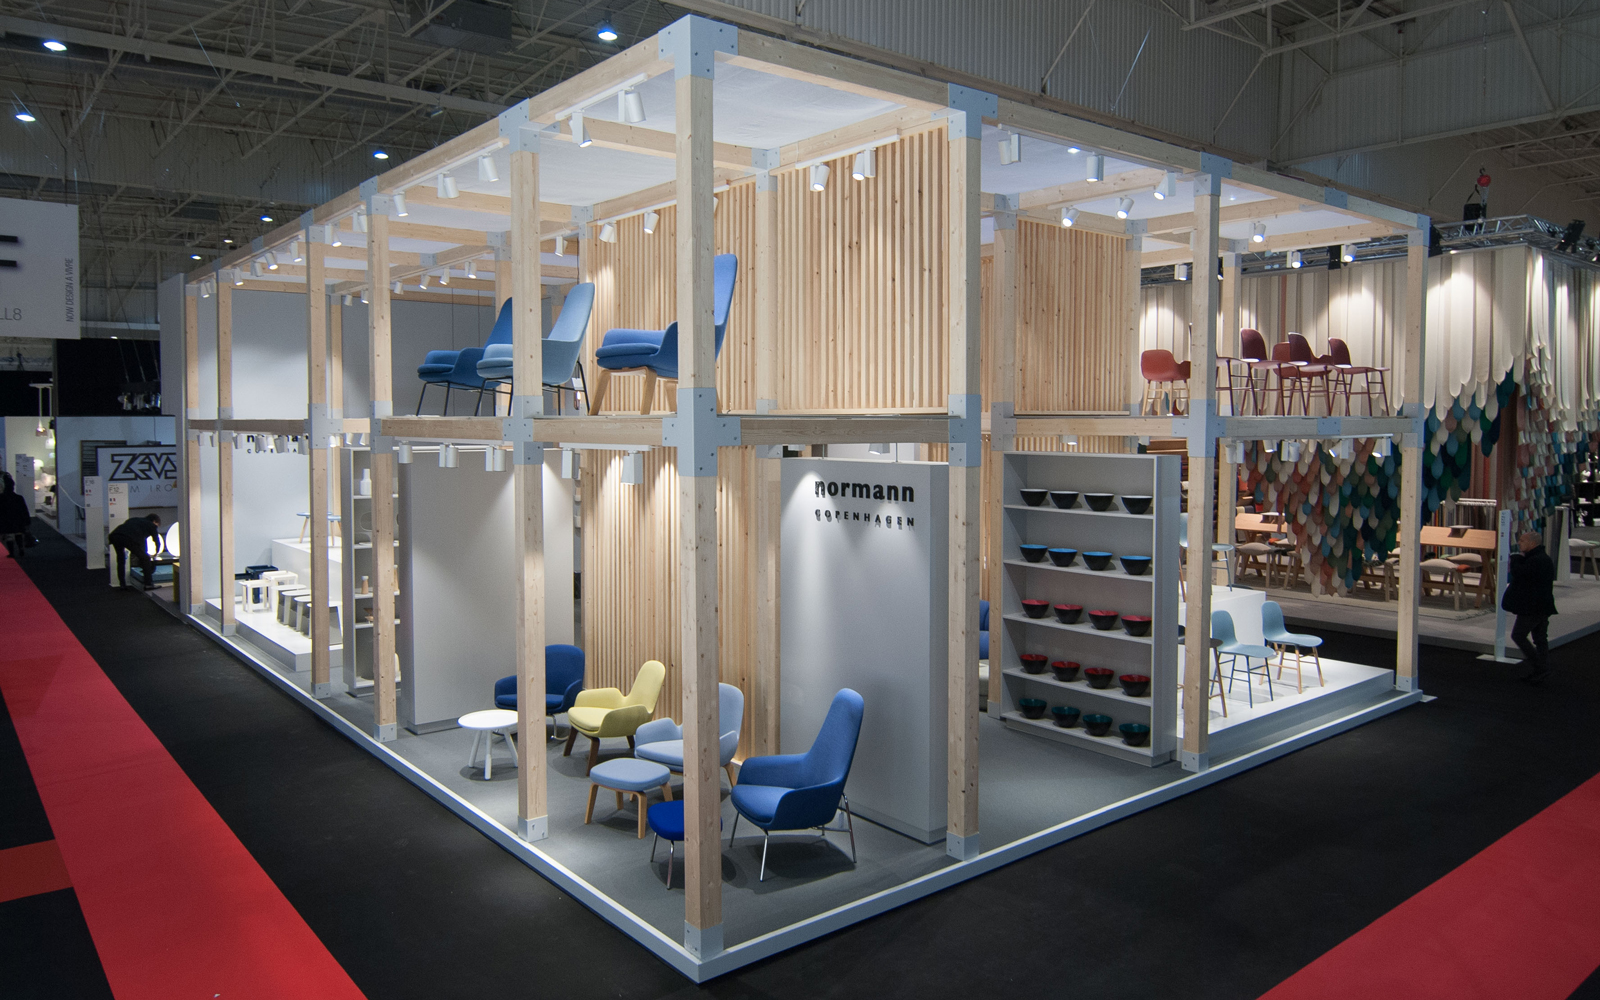 Maison objet 2015 fall collection in paris - Normann copenhagen paris ...